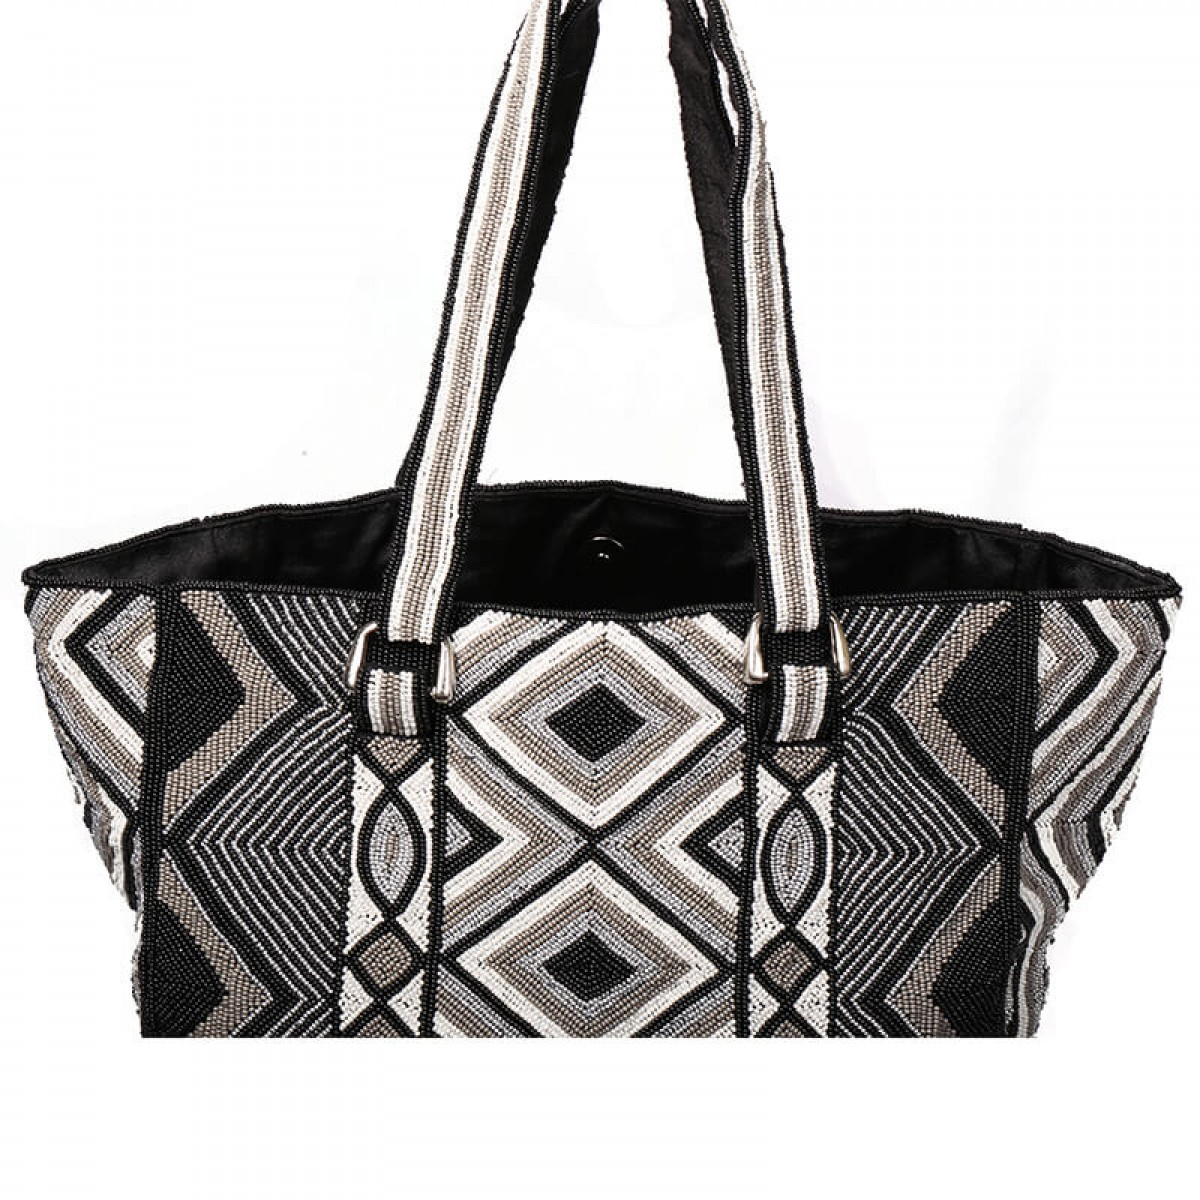 Beaded Tote Bag - Black